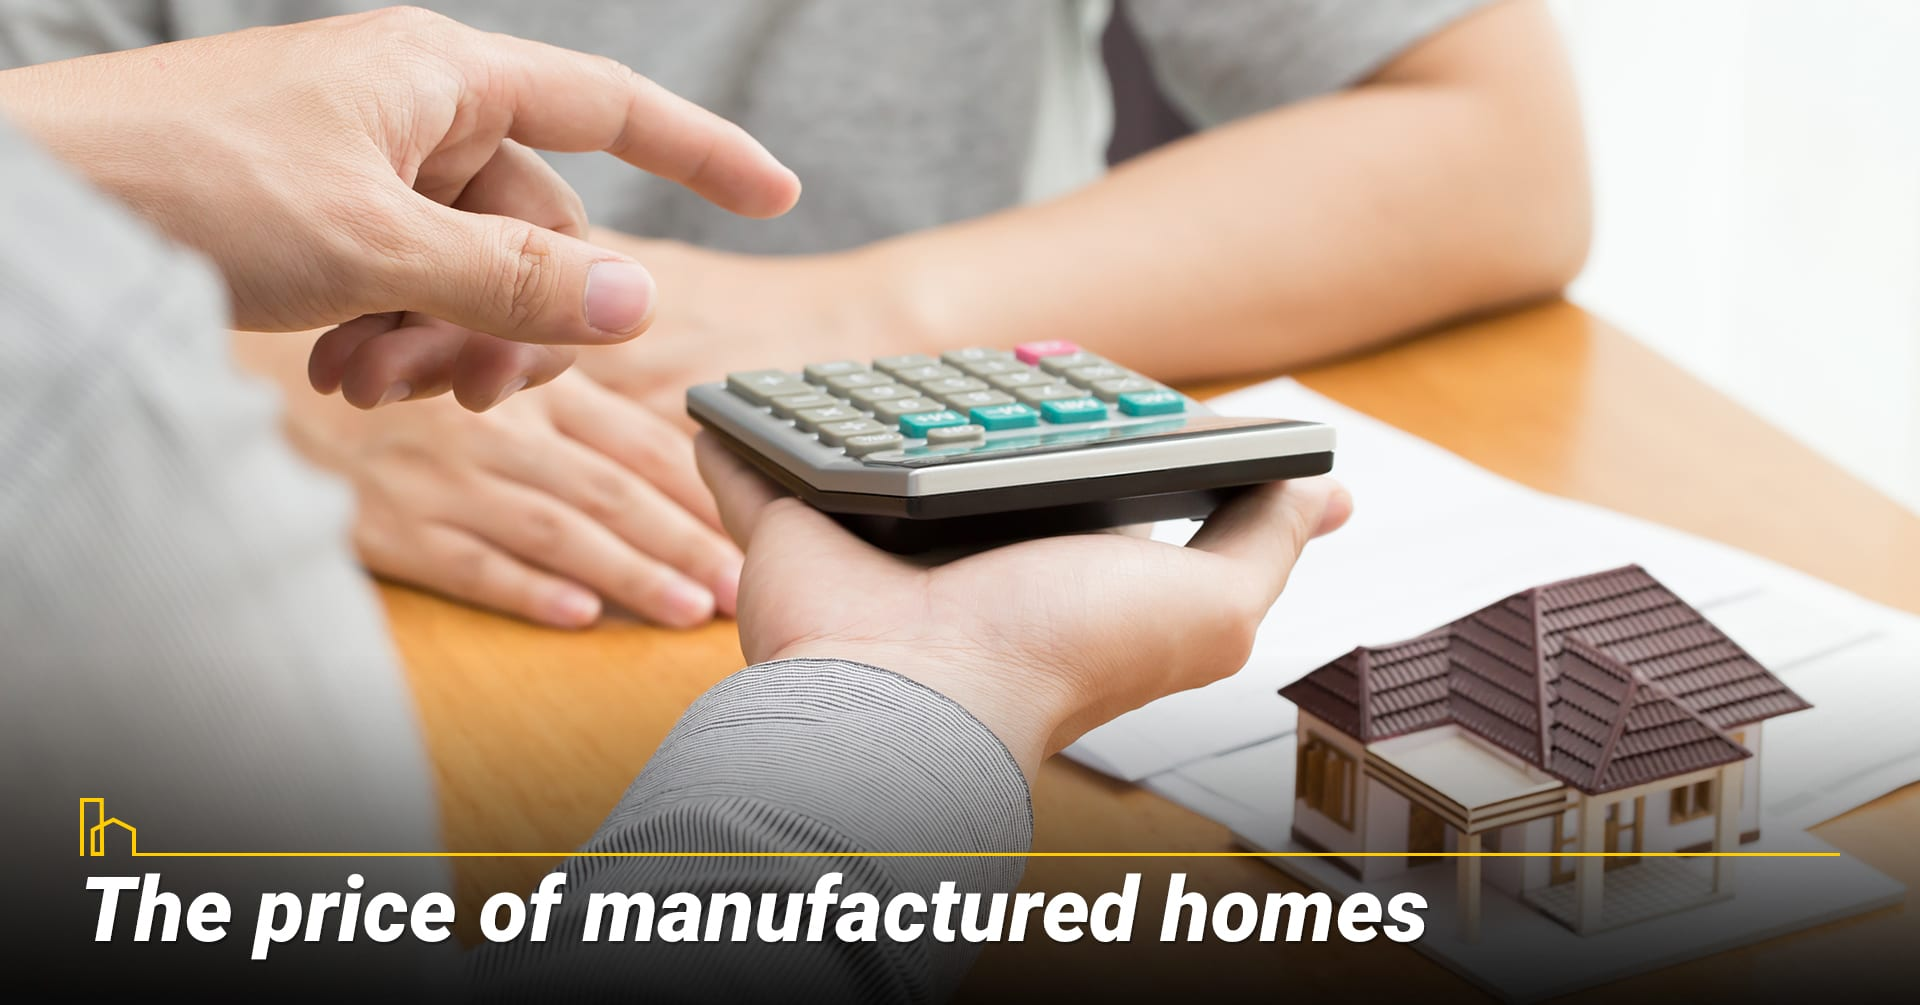 The price of manufactured homes, cost of manufactured homes